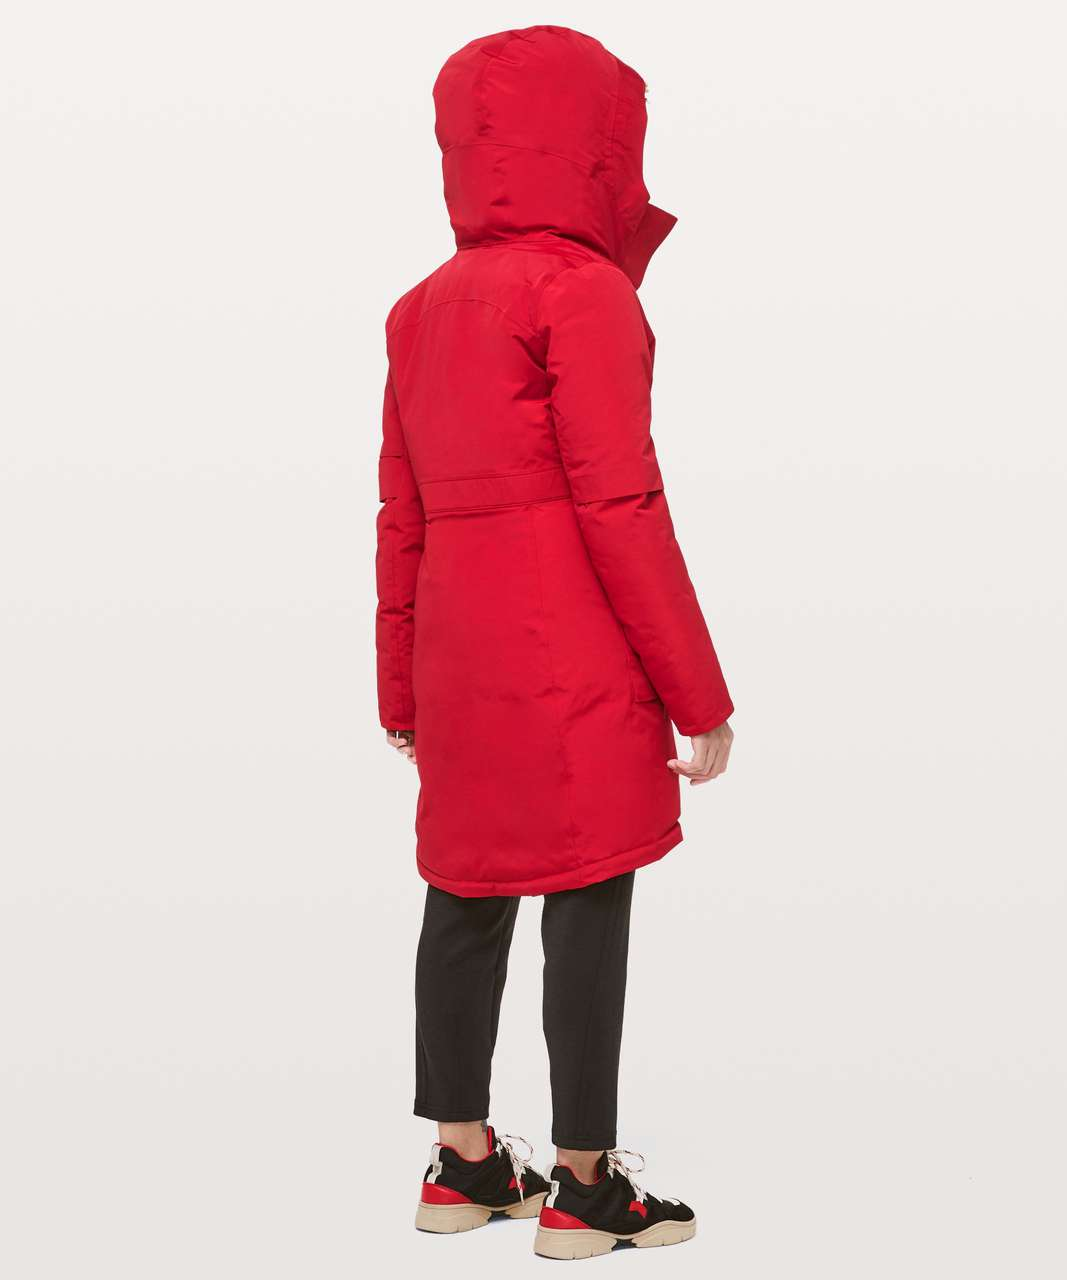 Lululemon Winter Warrior Parka - Dark Red